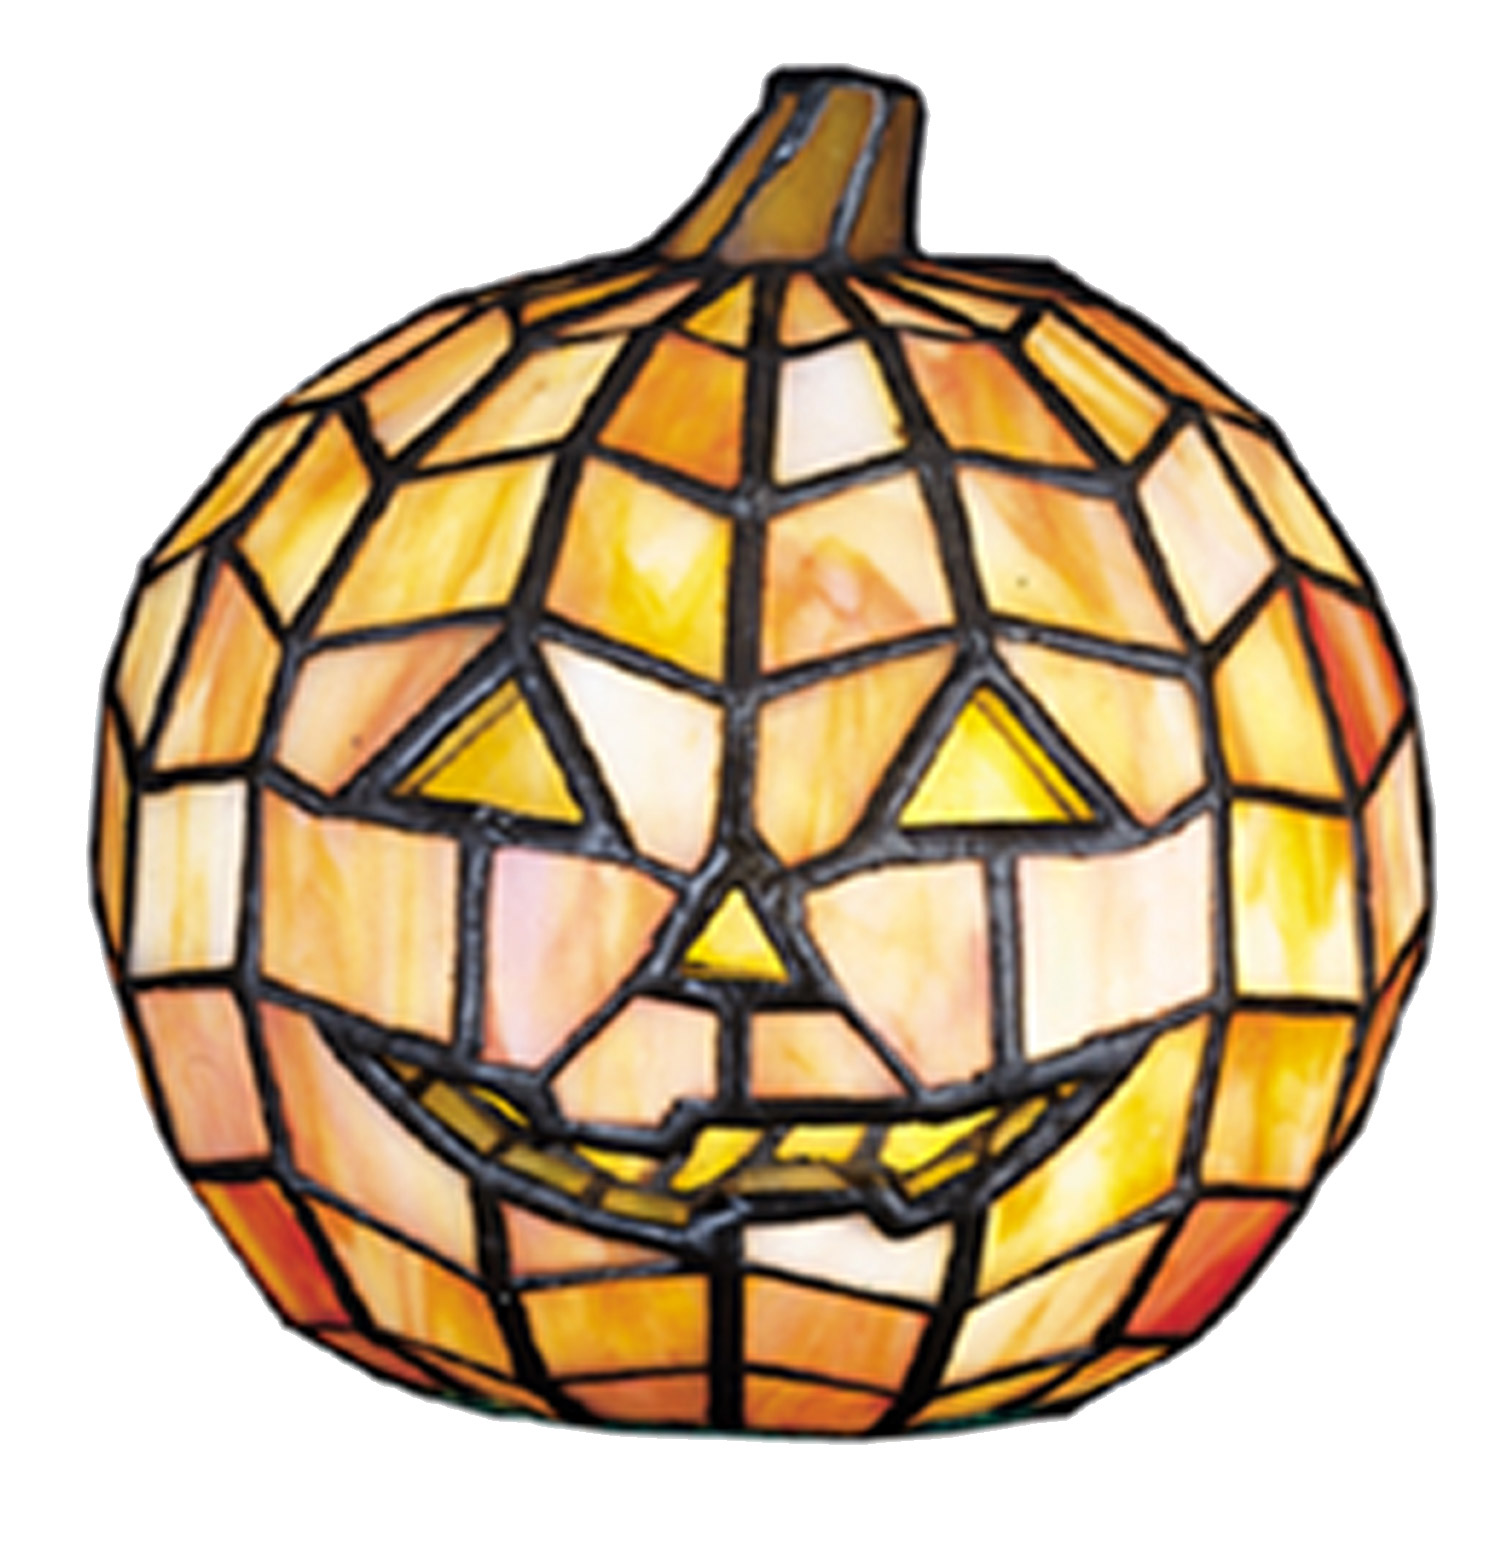 meyda tiffany pumpkin halloween accent lamp - Meyda Tiffany